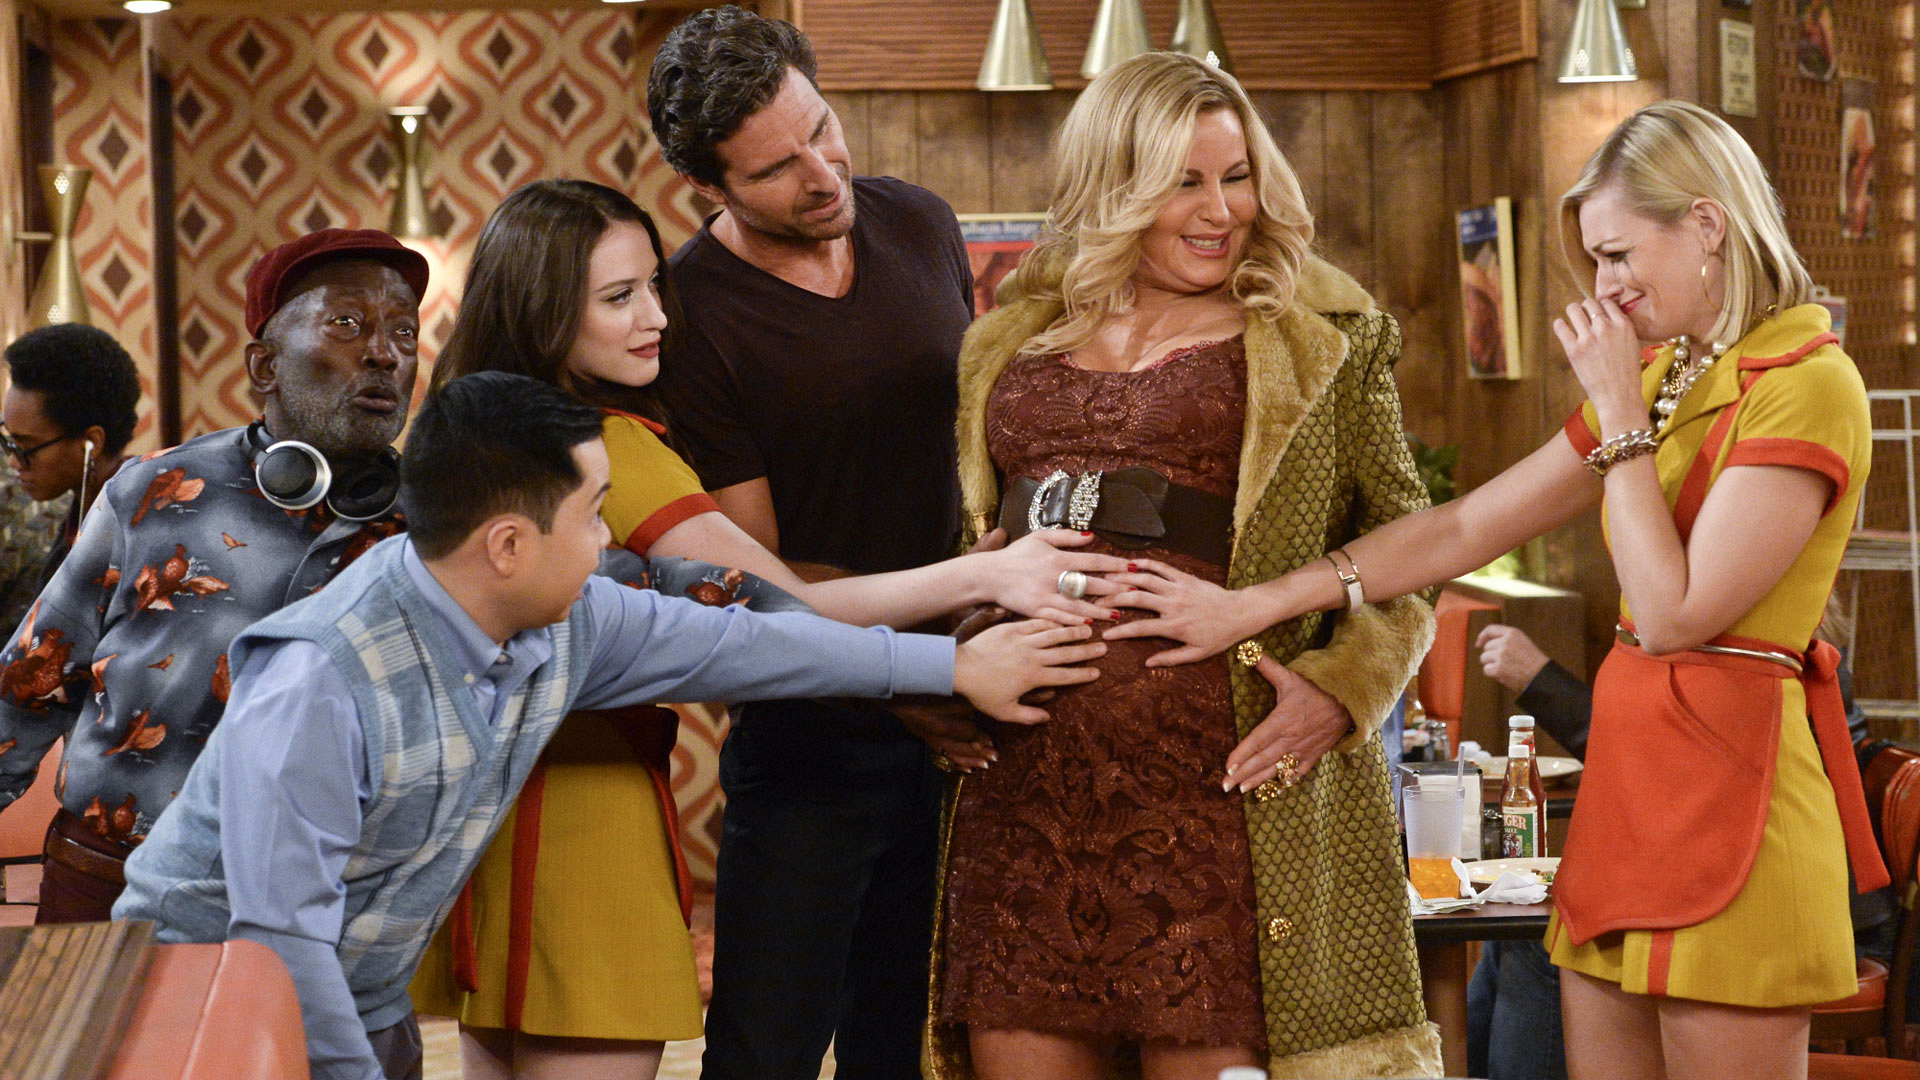 2 Broke Girls will center around babies and breakups.